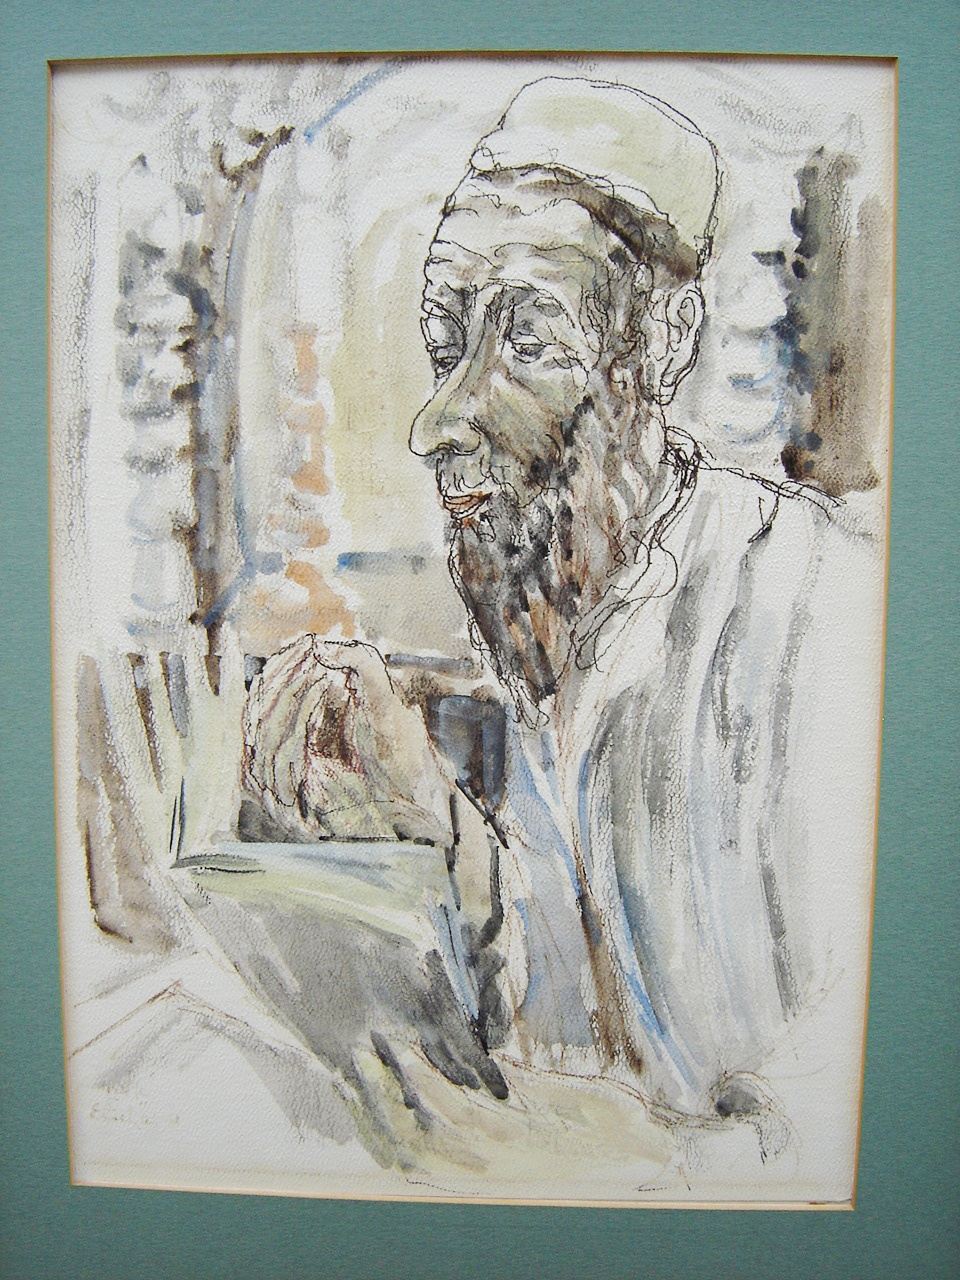 Lot 22 - Israeli Rabbi Portrait Watercolour Signed Elichai